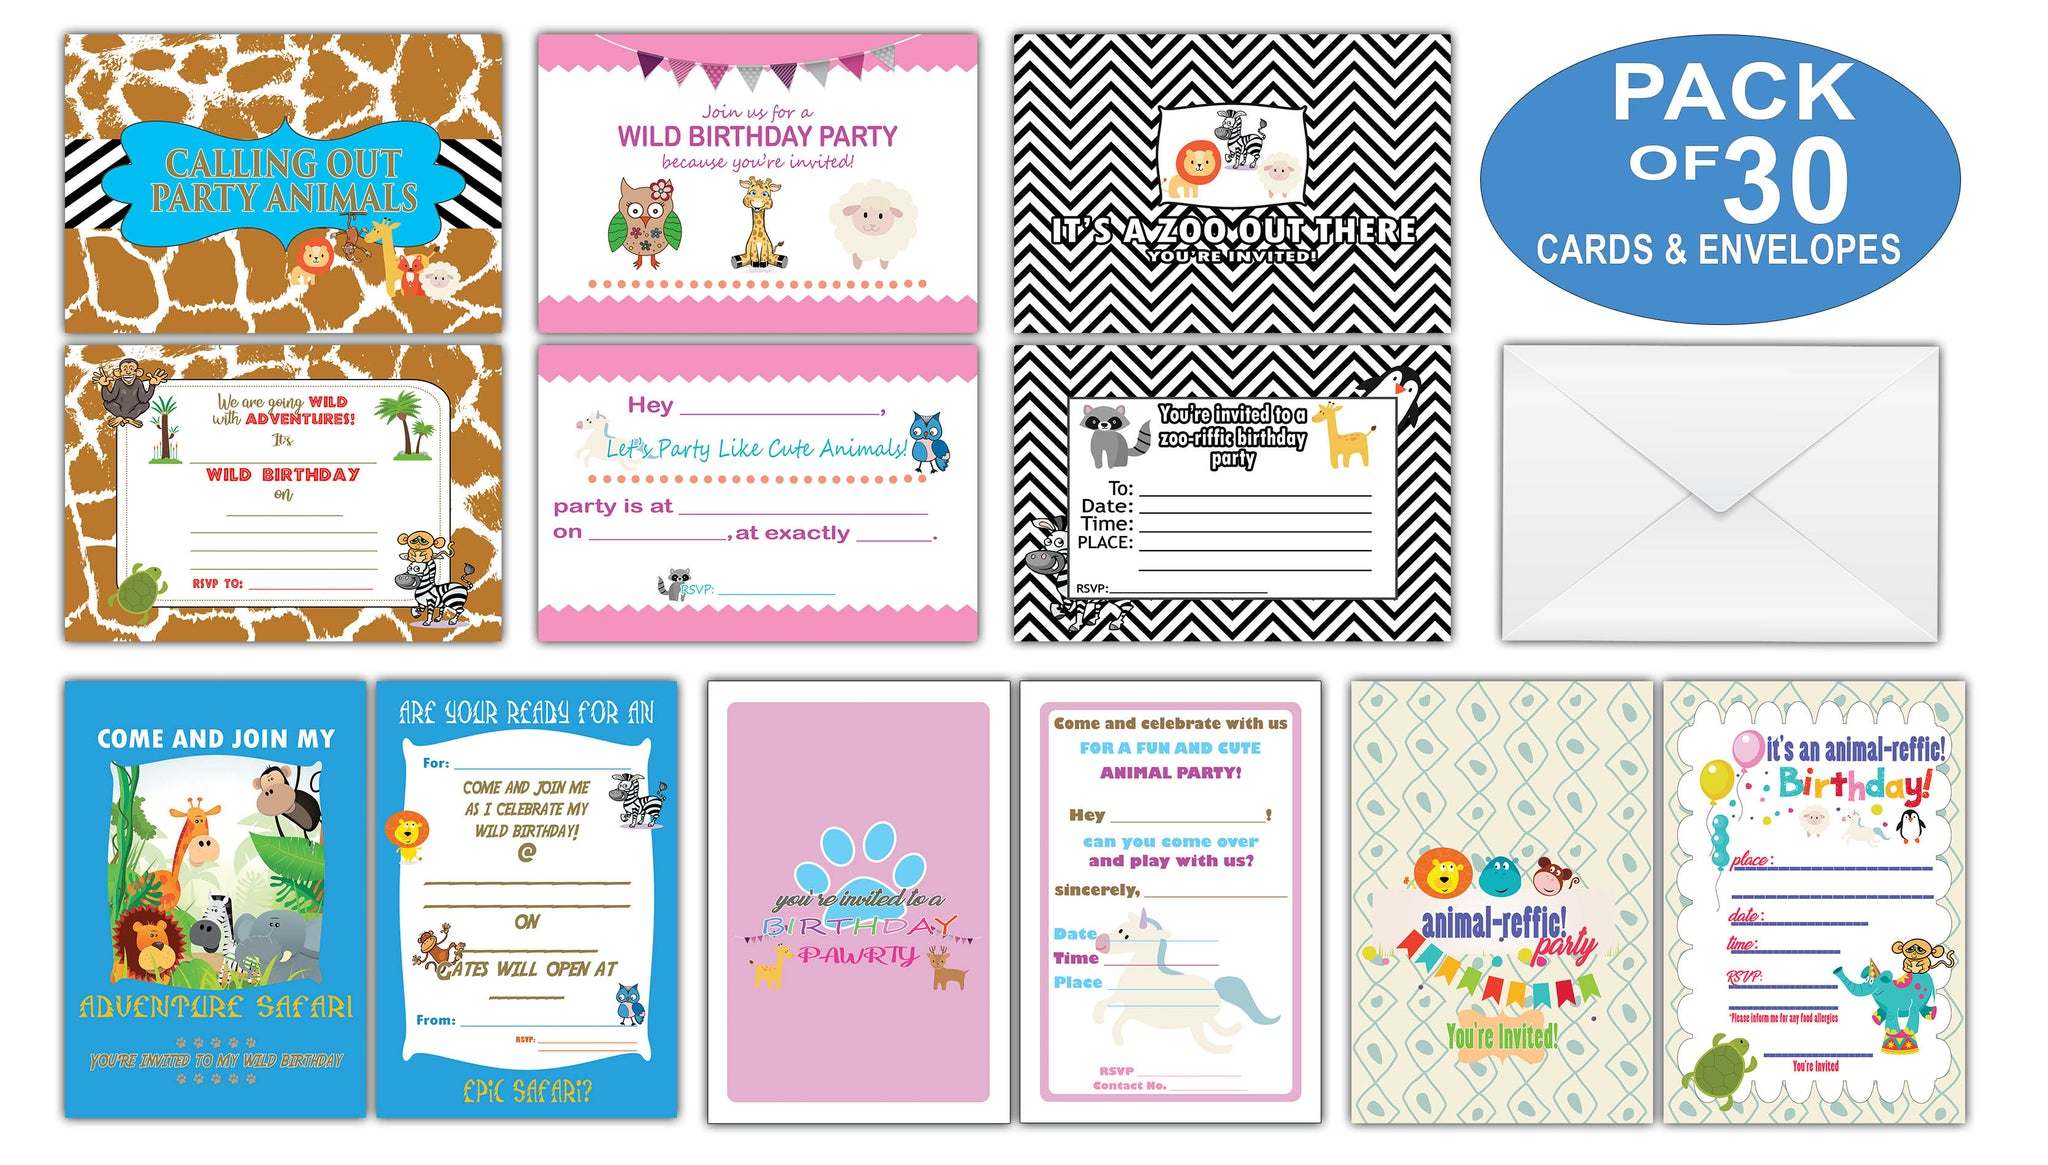 Creanoso cute animals themed birthday celebration invite cards 30 pac creanoso cute animals themed birthday celebration invite cards 30 pack invitation cards filmwisefo